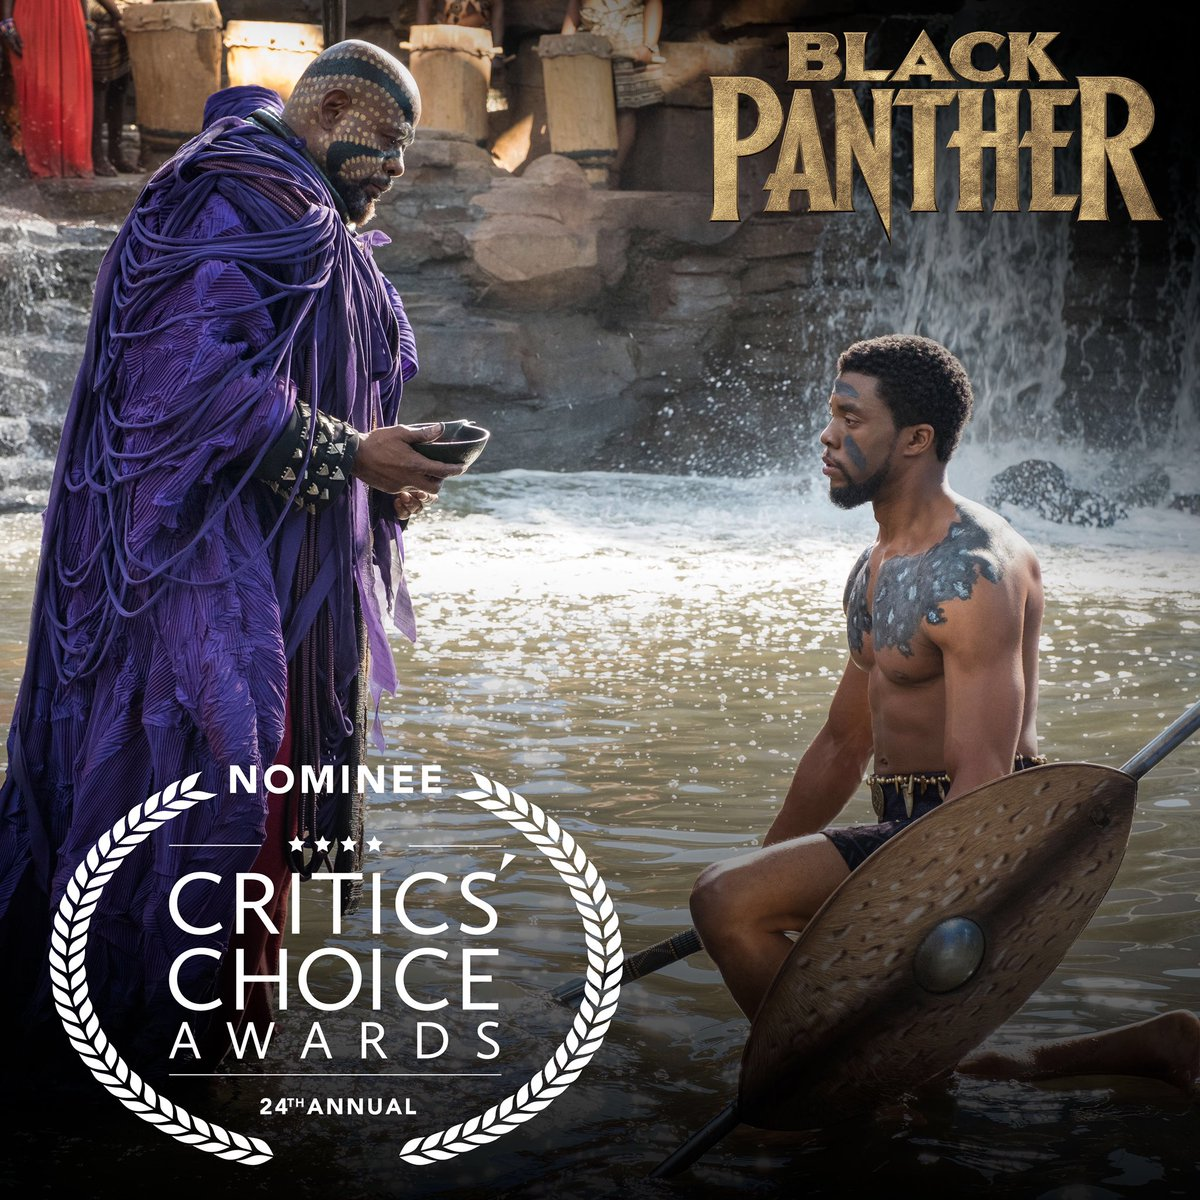 Congratulations to Marvel Studios' #BlackPanther which has been nominated for 12 #CriticsChoice Awards, including Best Picture!